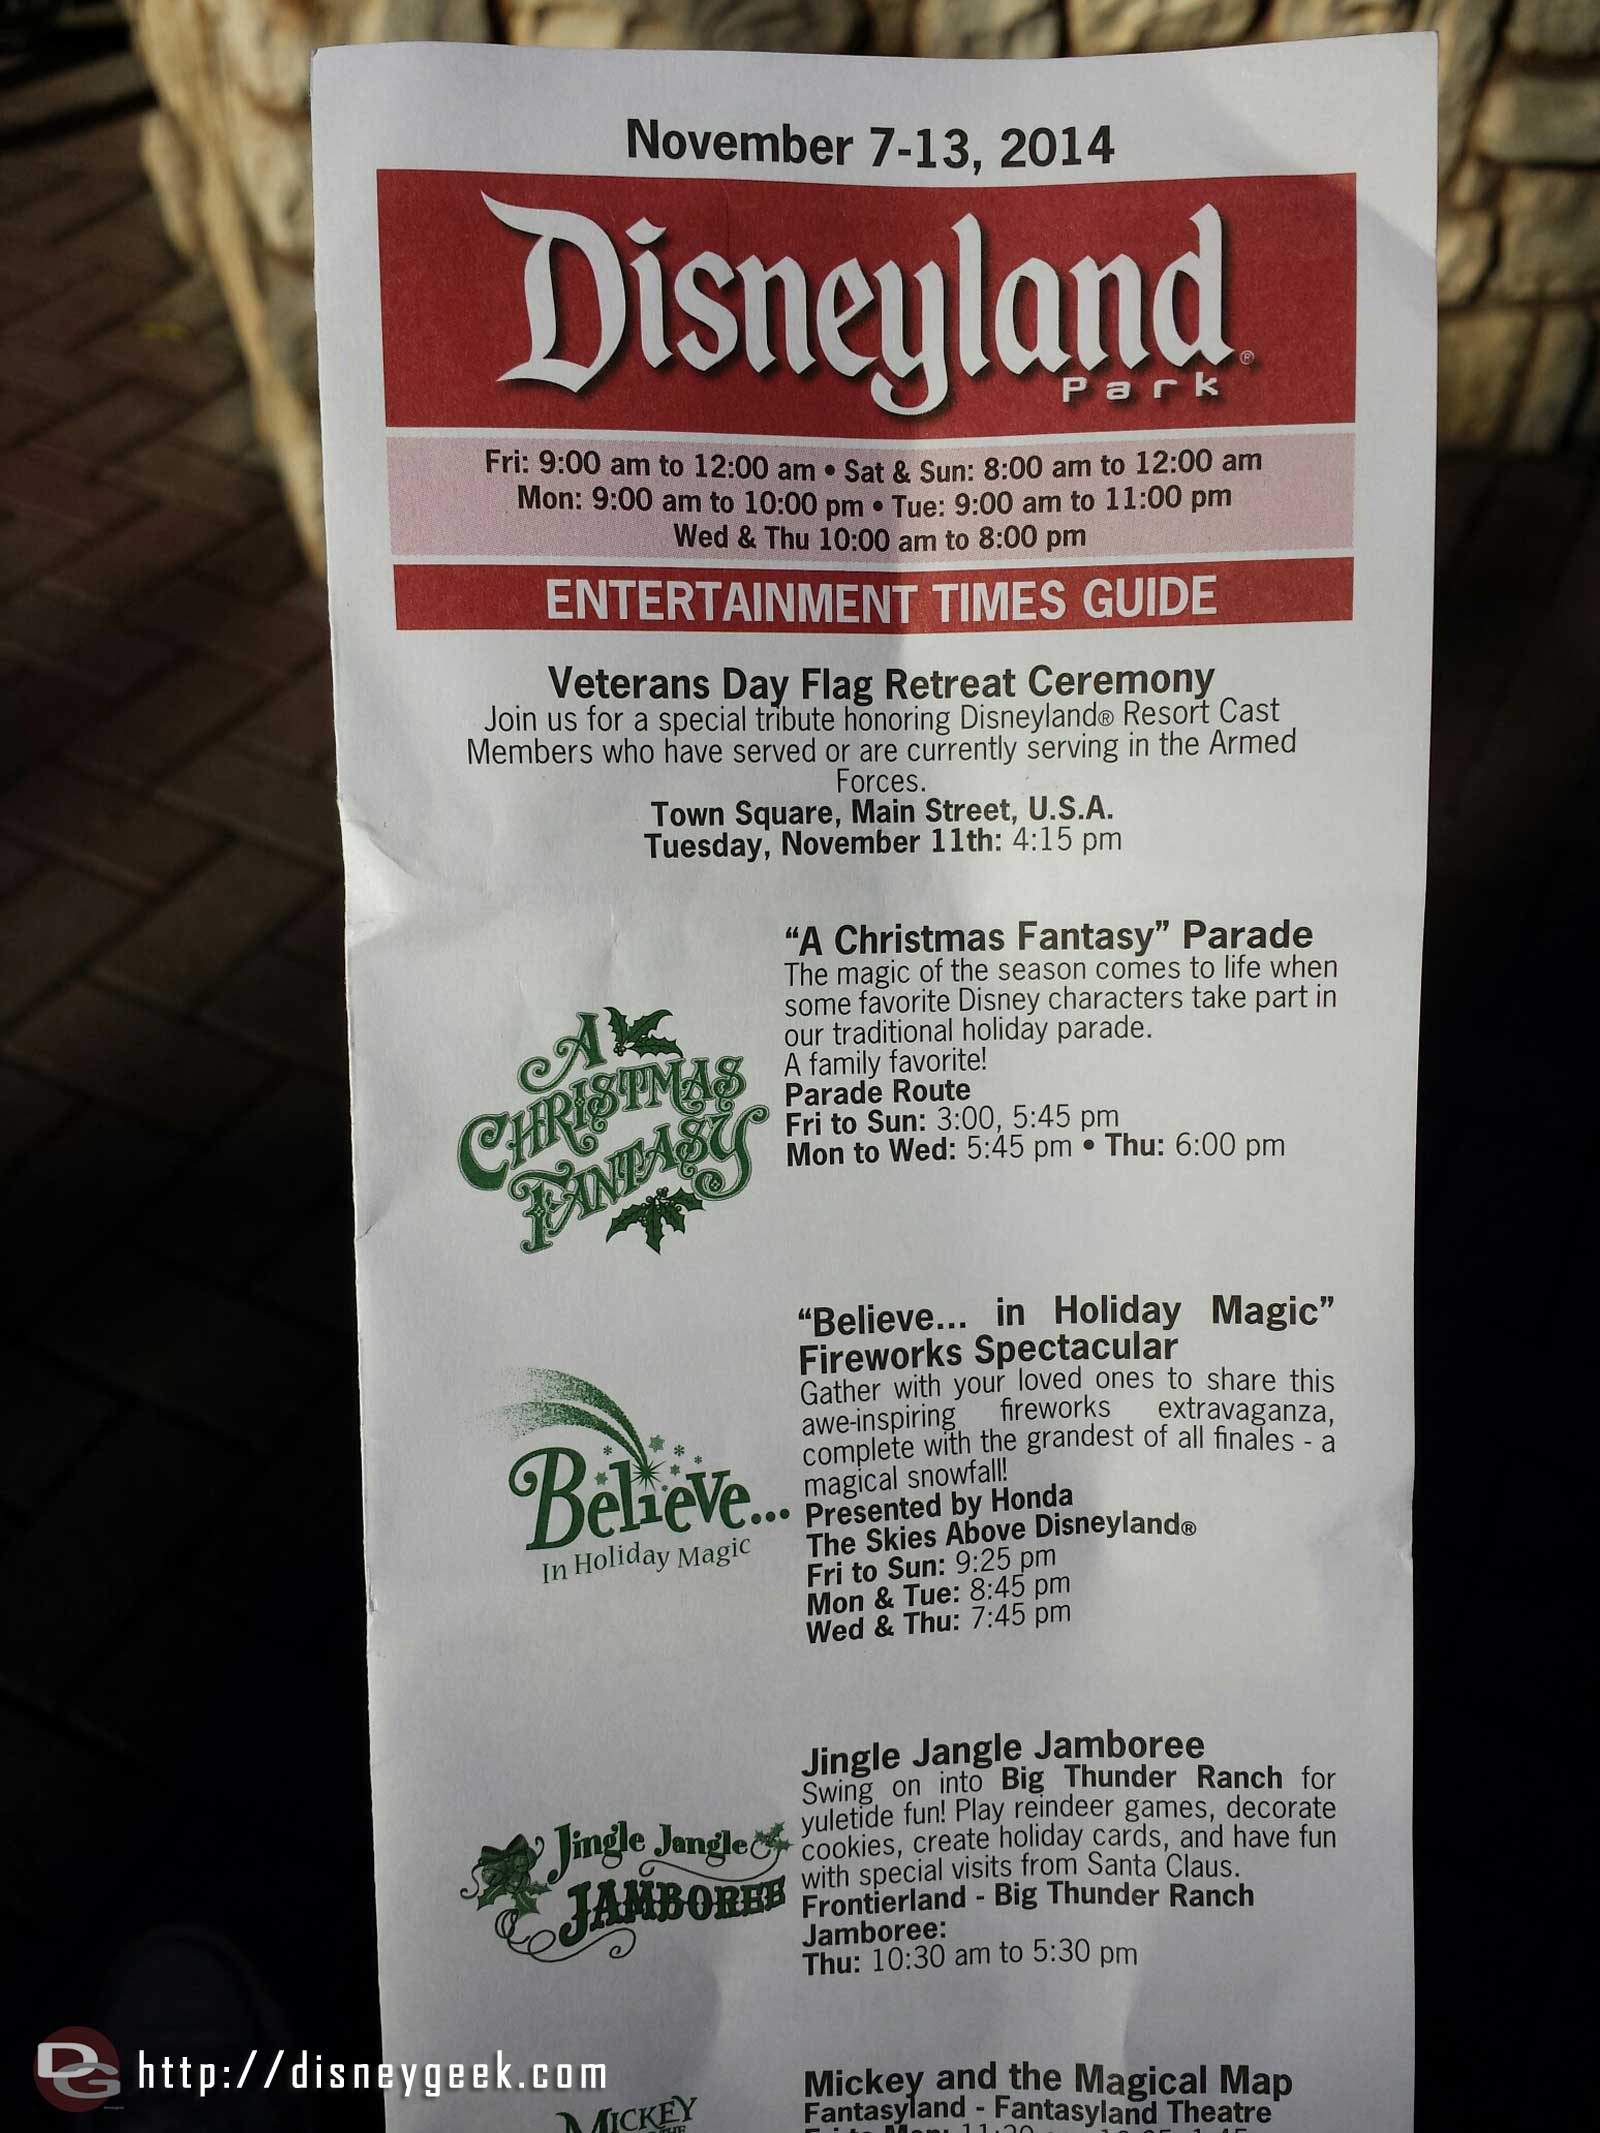 #Disneyland timesguide for today.  Featuring Christmas Entertainment & a Veterans day flag retreat